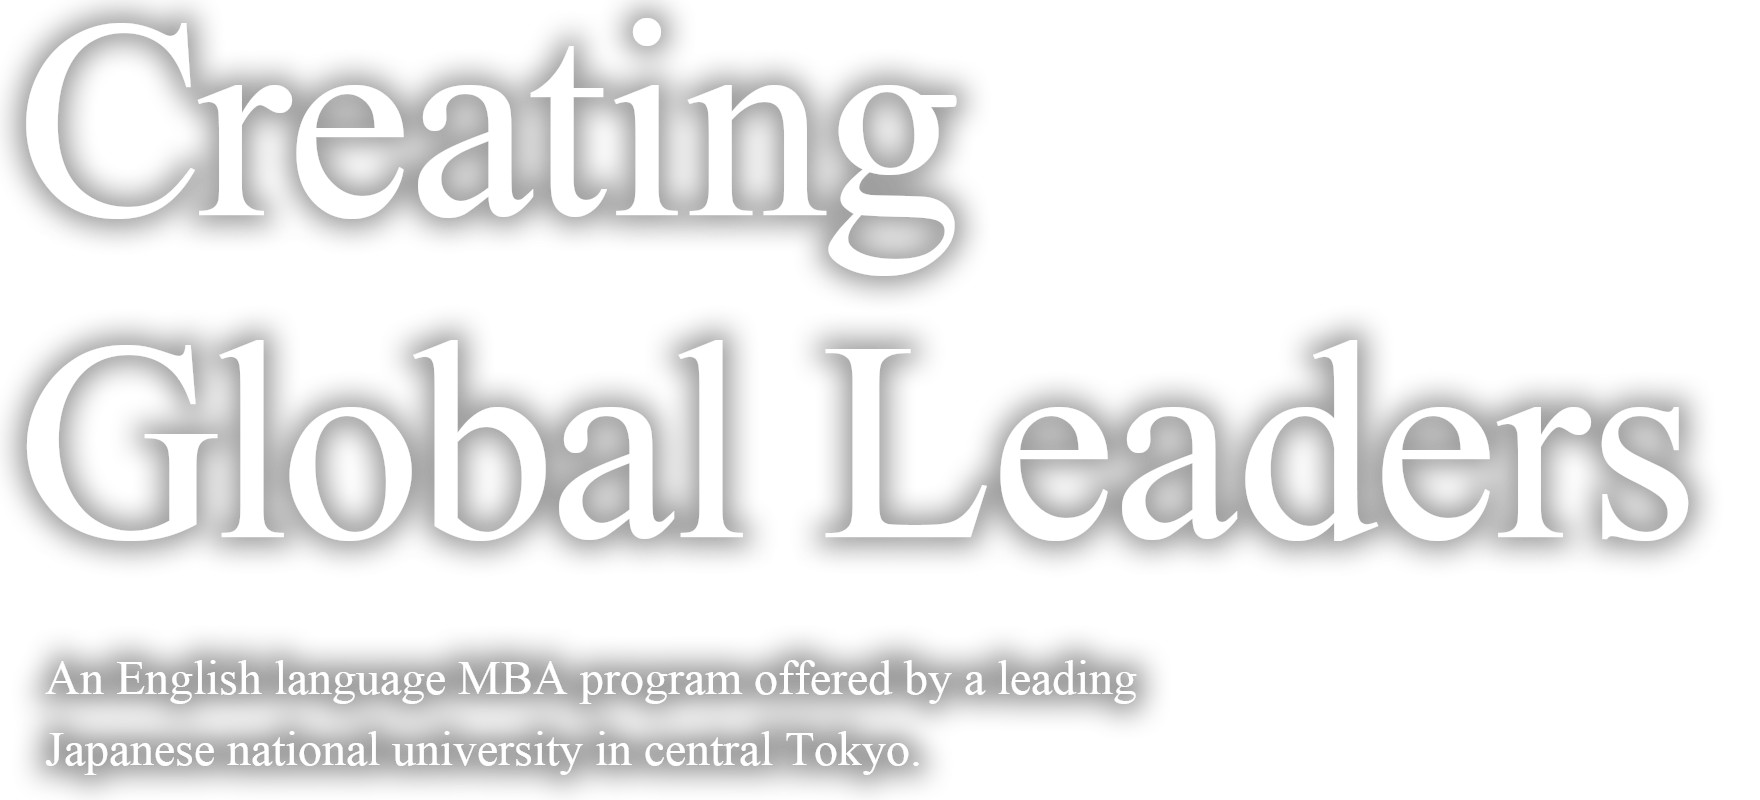 Creating Global Leaders An English language MBA program offered by a leading Japanese national university at campus in central Tokyo.